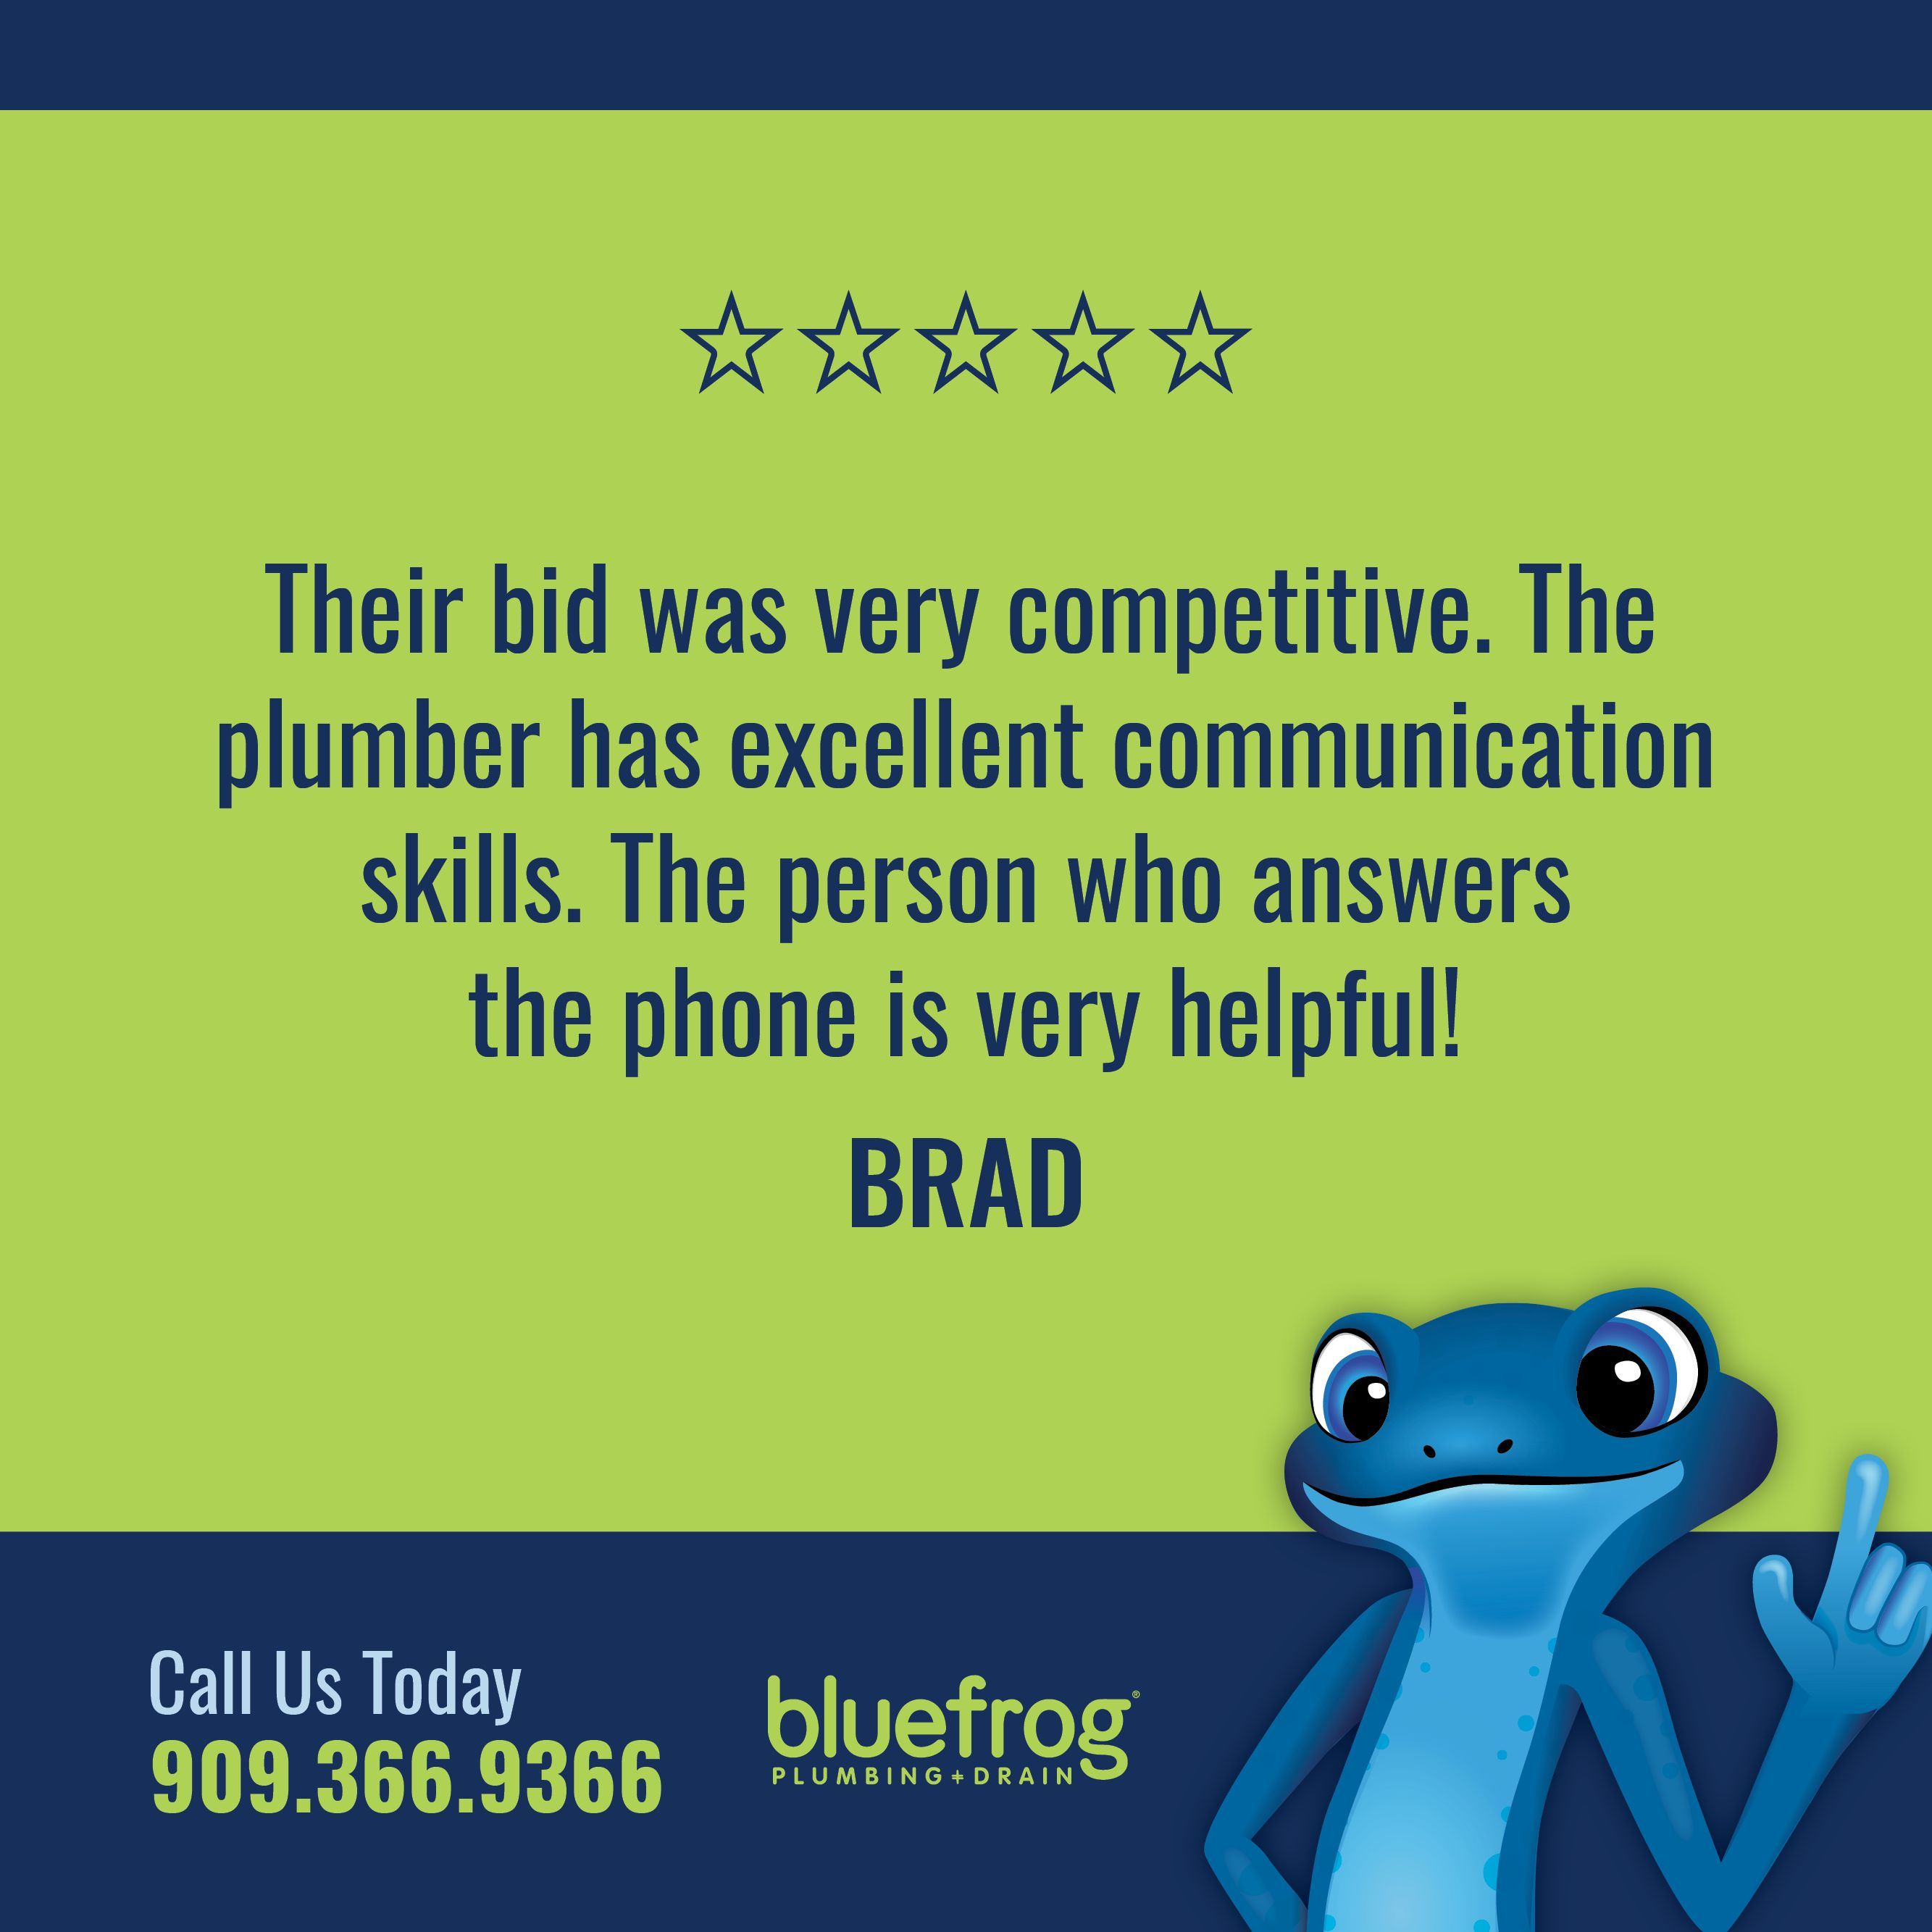 Thank You Brad For This Excellent Review Thank You For Choosing Us For All Your Plumbing Service And Repair Need Plumbing Emergency Plumbing Drains Plumbing